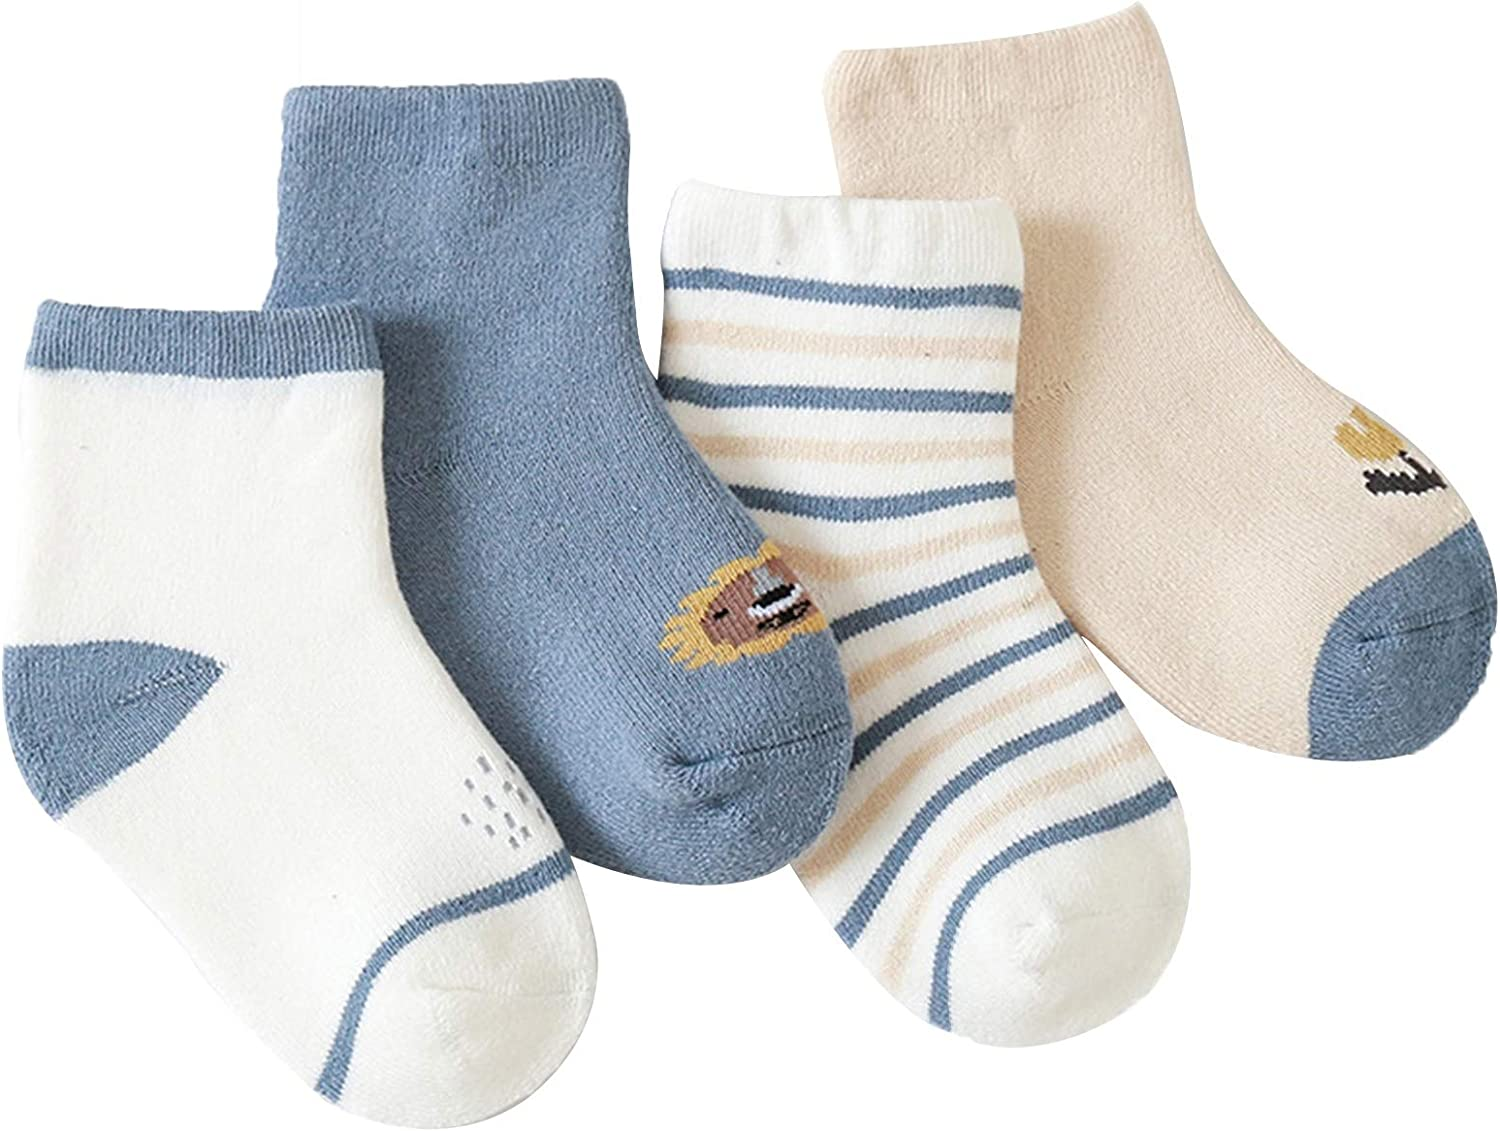 WUQIANG Floor Socks 4 Pairs of Warm Winter f Children Sale Challenge the lowest price of Japan Special Price Crew